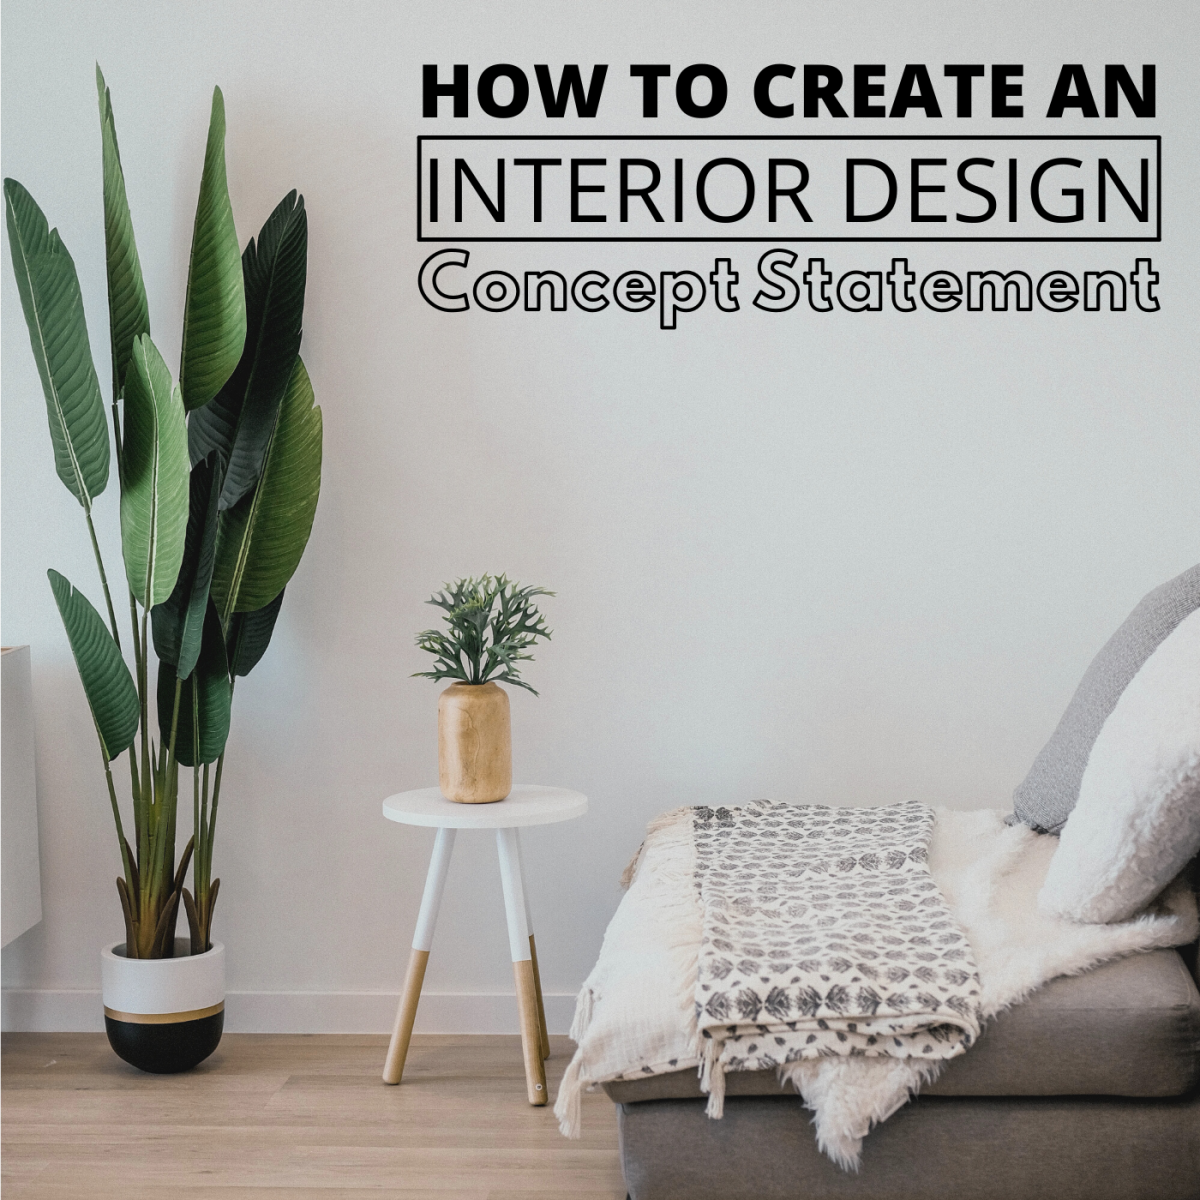 In interior design, your concept statement is essentially the thesis or heart of your proposal.